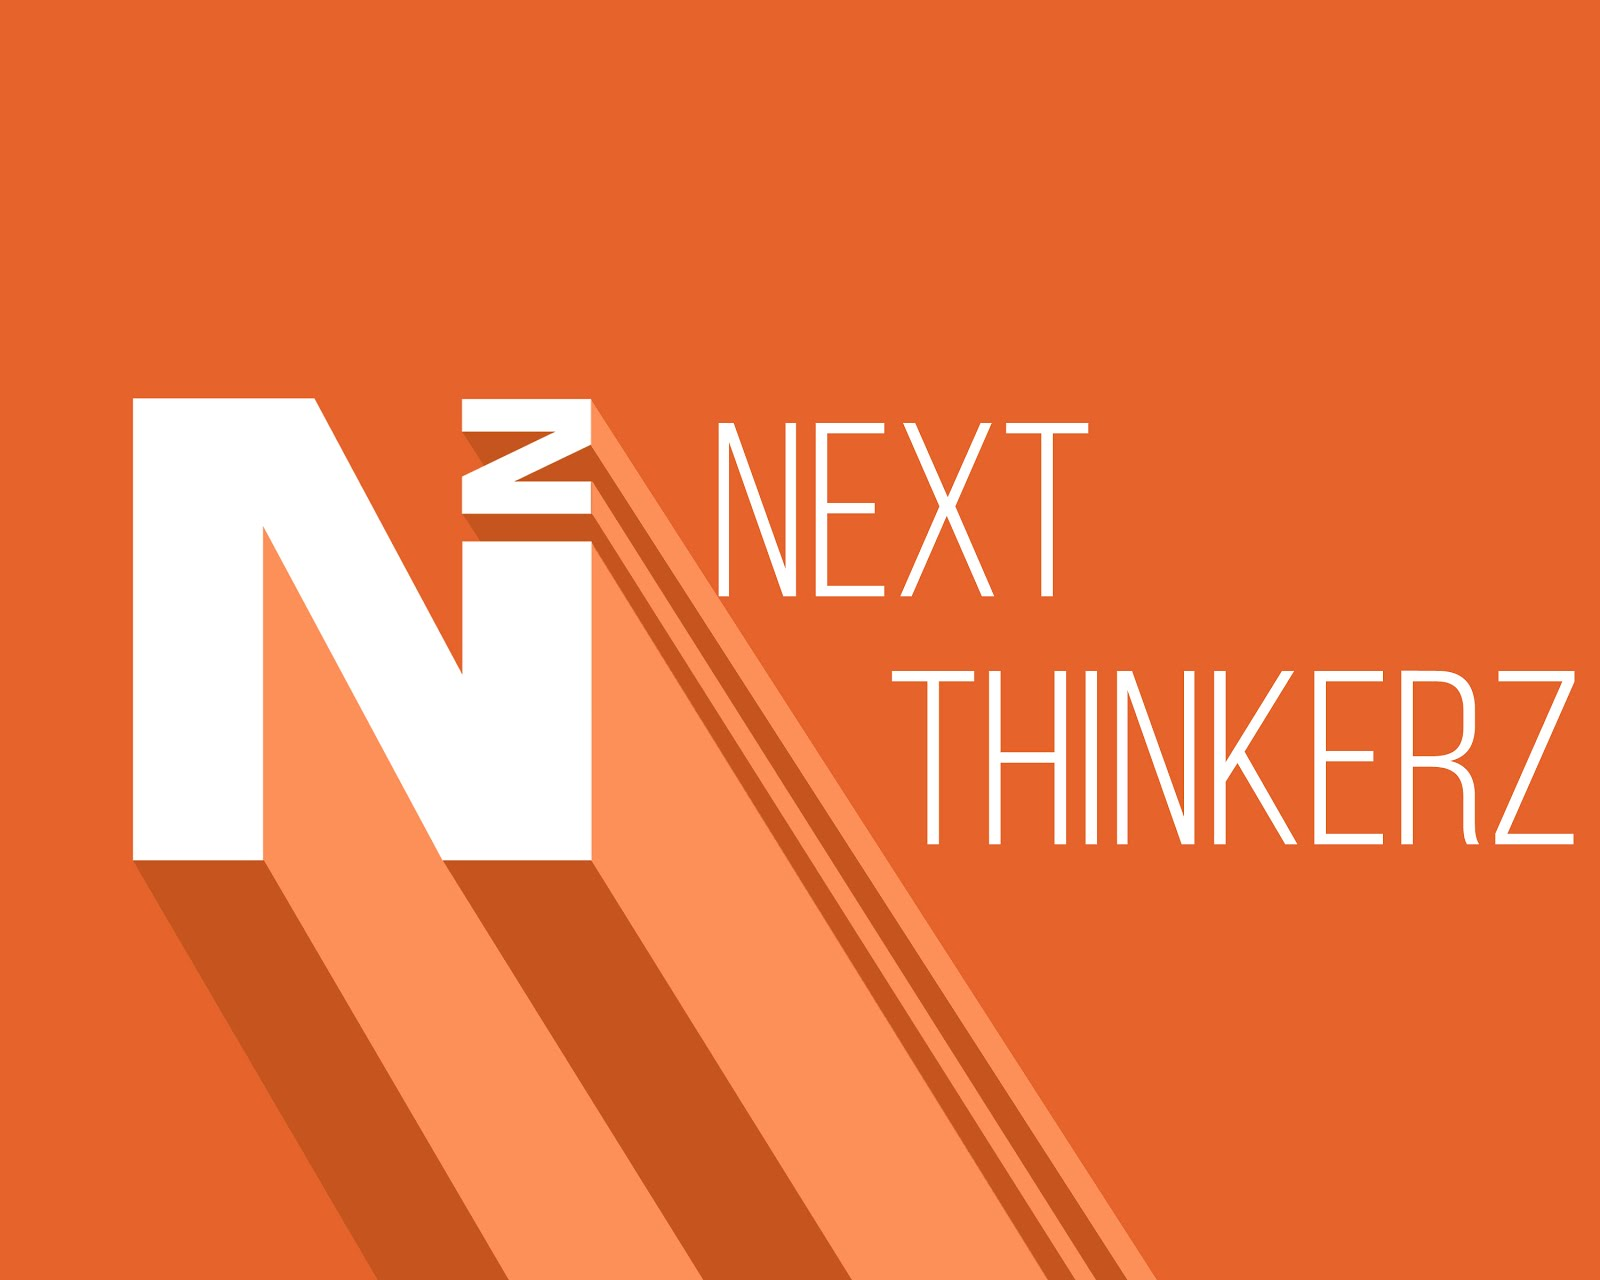 Next thinkerz